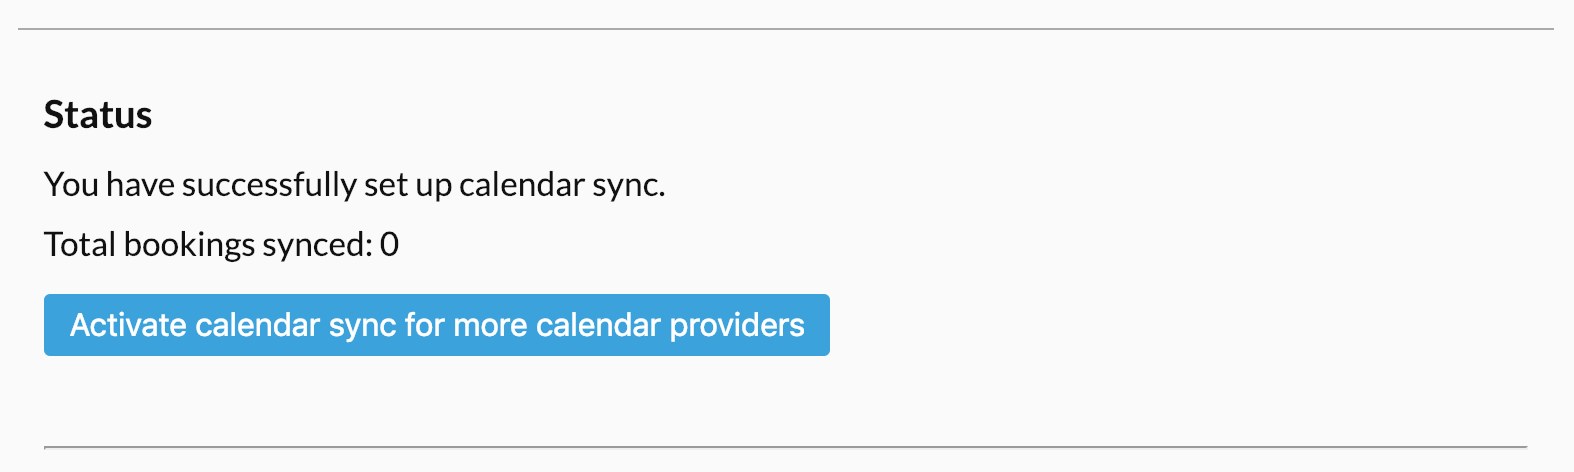 How to add additional calendars to your sync